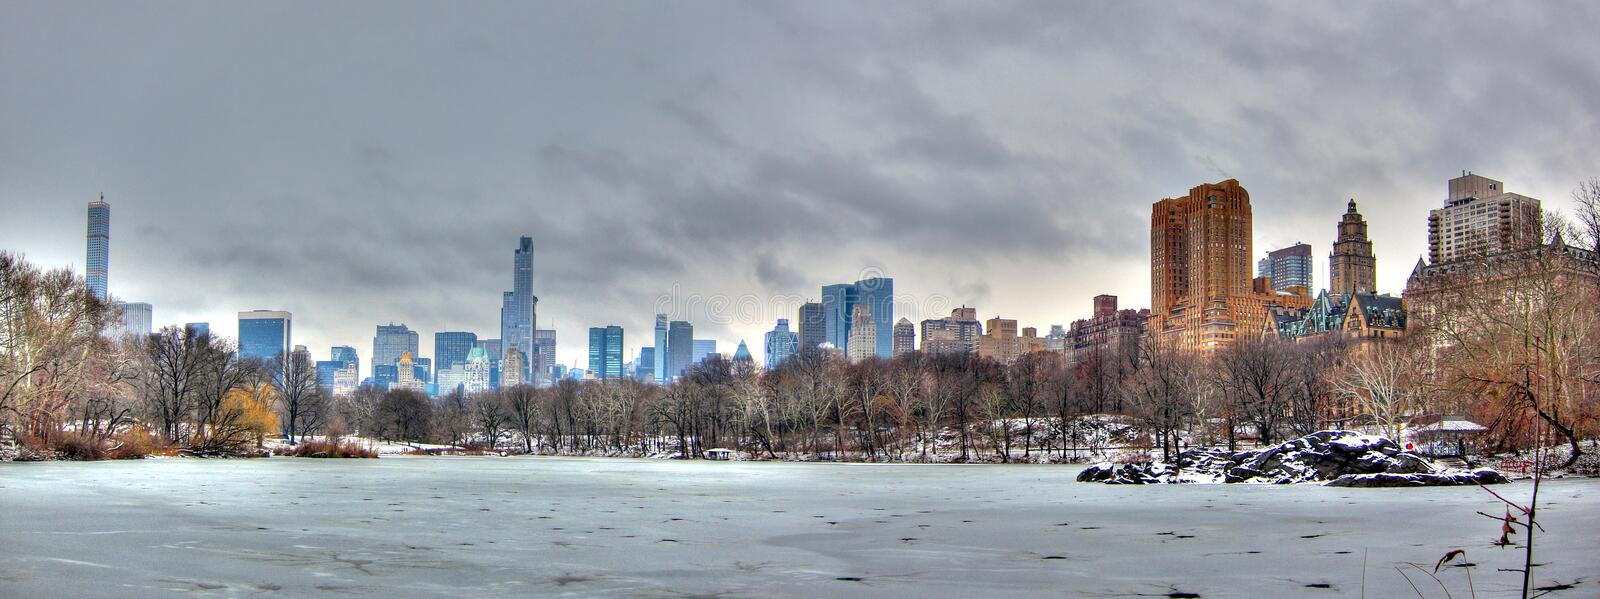 Central Park In Snow, Manhattan, New York City. A panoramic view of Manhattan from central park covered in snow, New York City royalty free stock photo